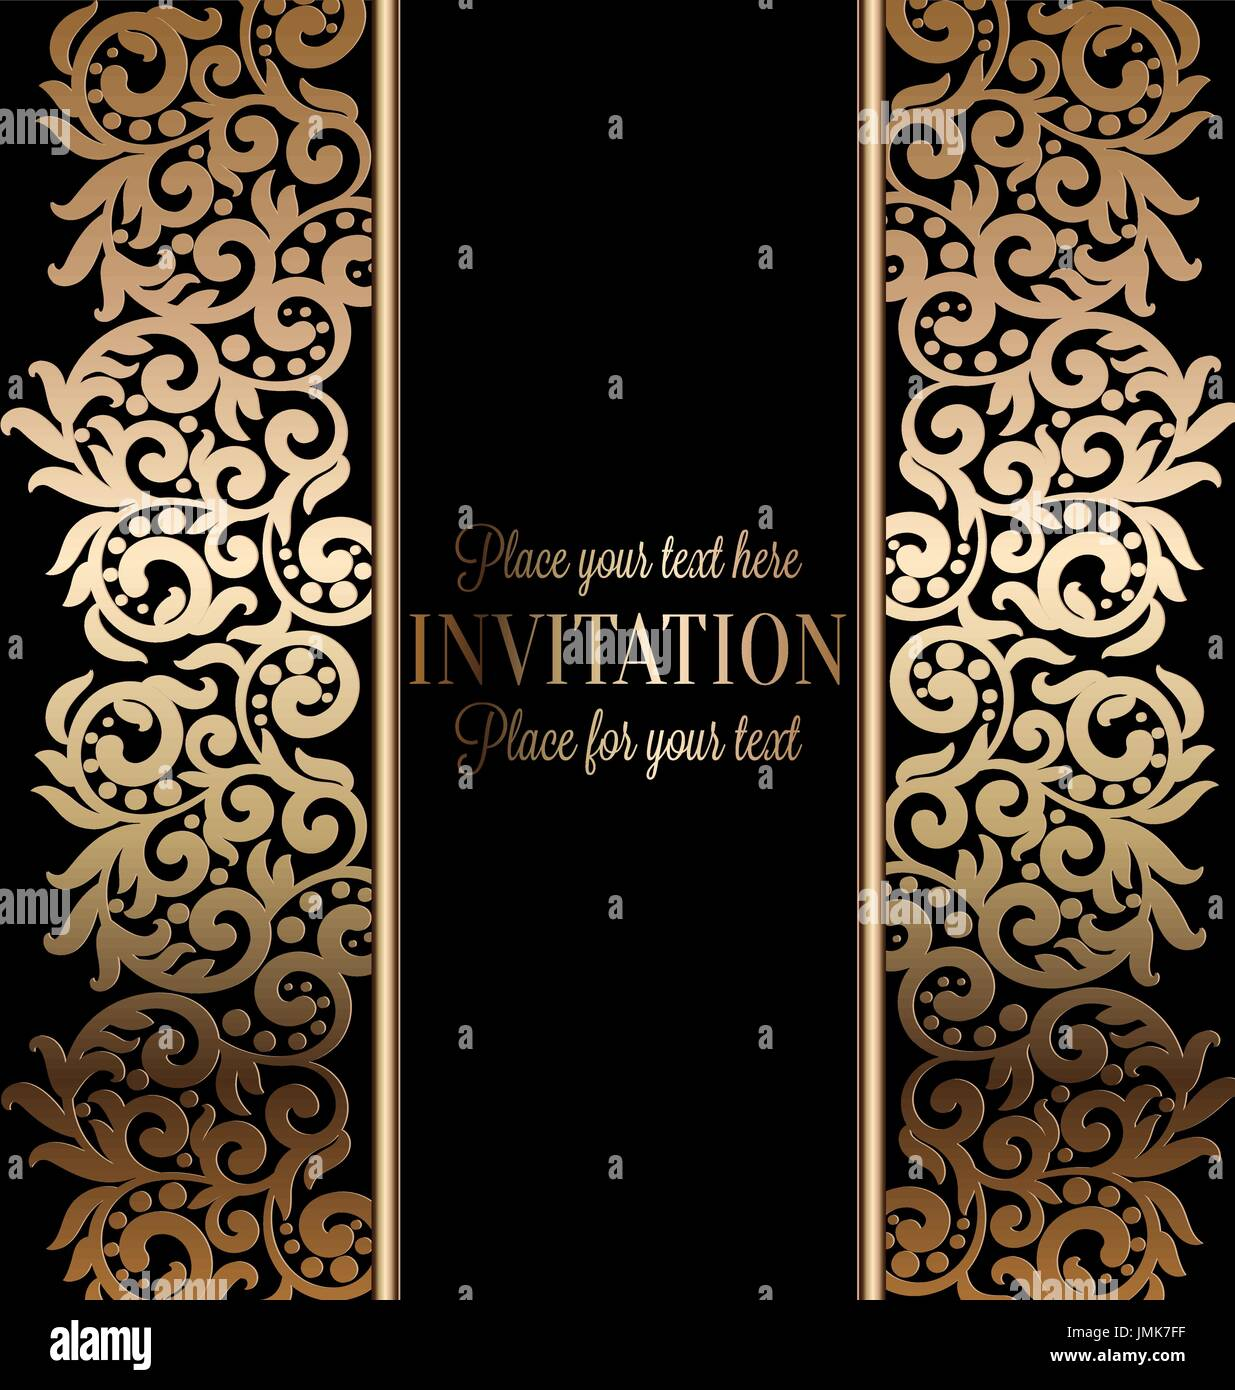 Antique baroque luxury wedding invitation gold on black background antique baroque luxury wedding invitation gold on black background with frame and place for text lacy foliage with shiny gradient stopboris Image collections